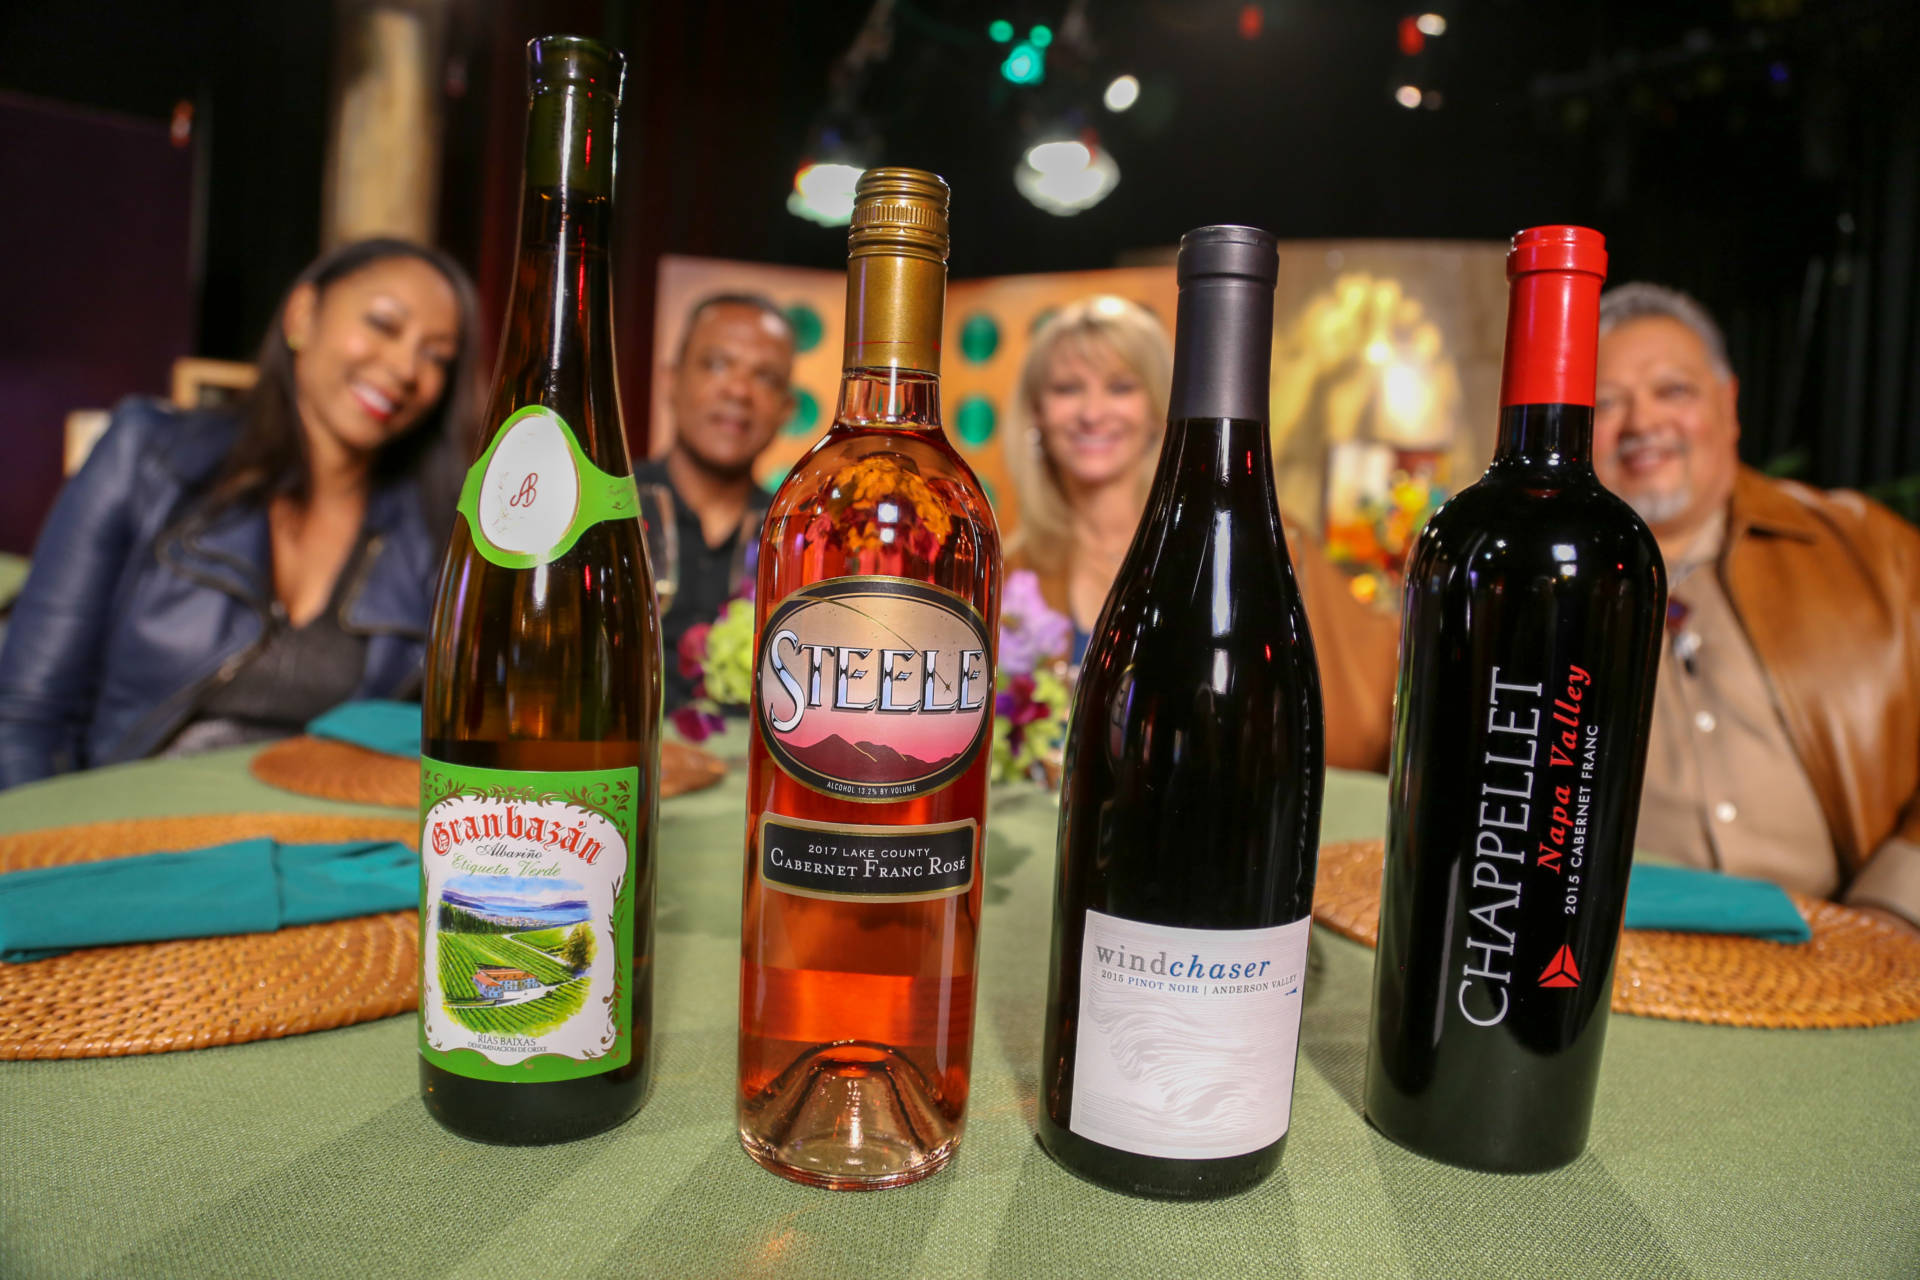 Wine that guests drank on the set of season 13 episode 11.